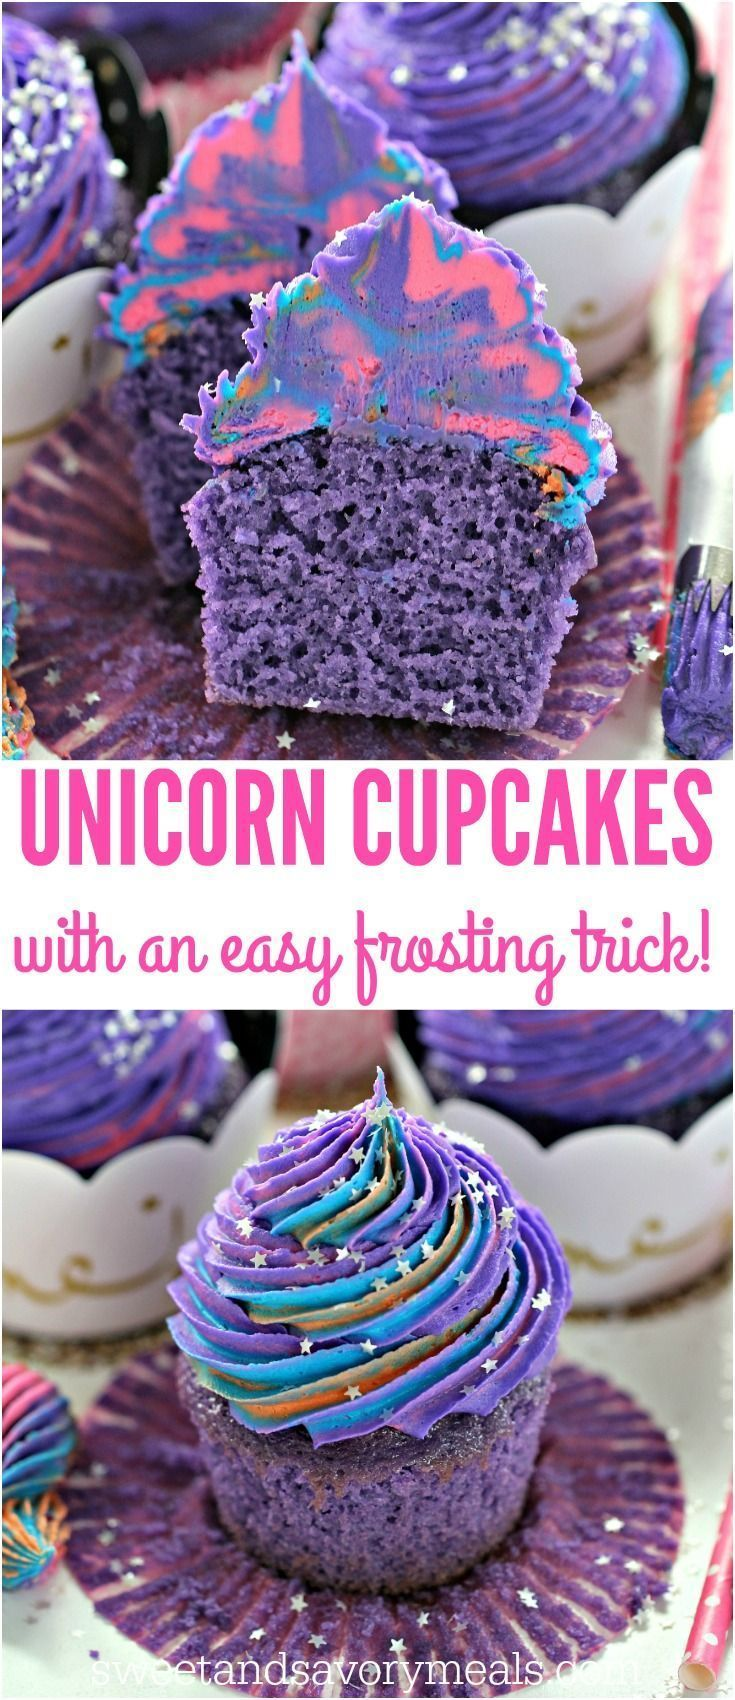 Unicorn Cupcakes are astonishingly pretty delicious and easy to